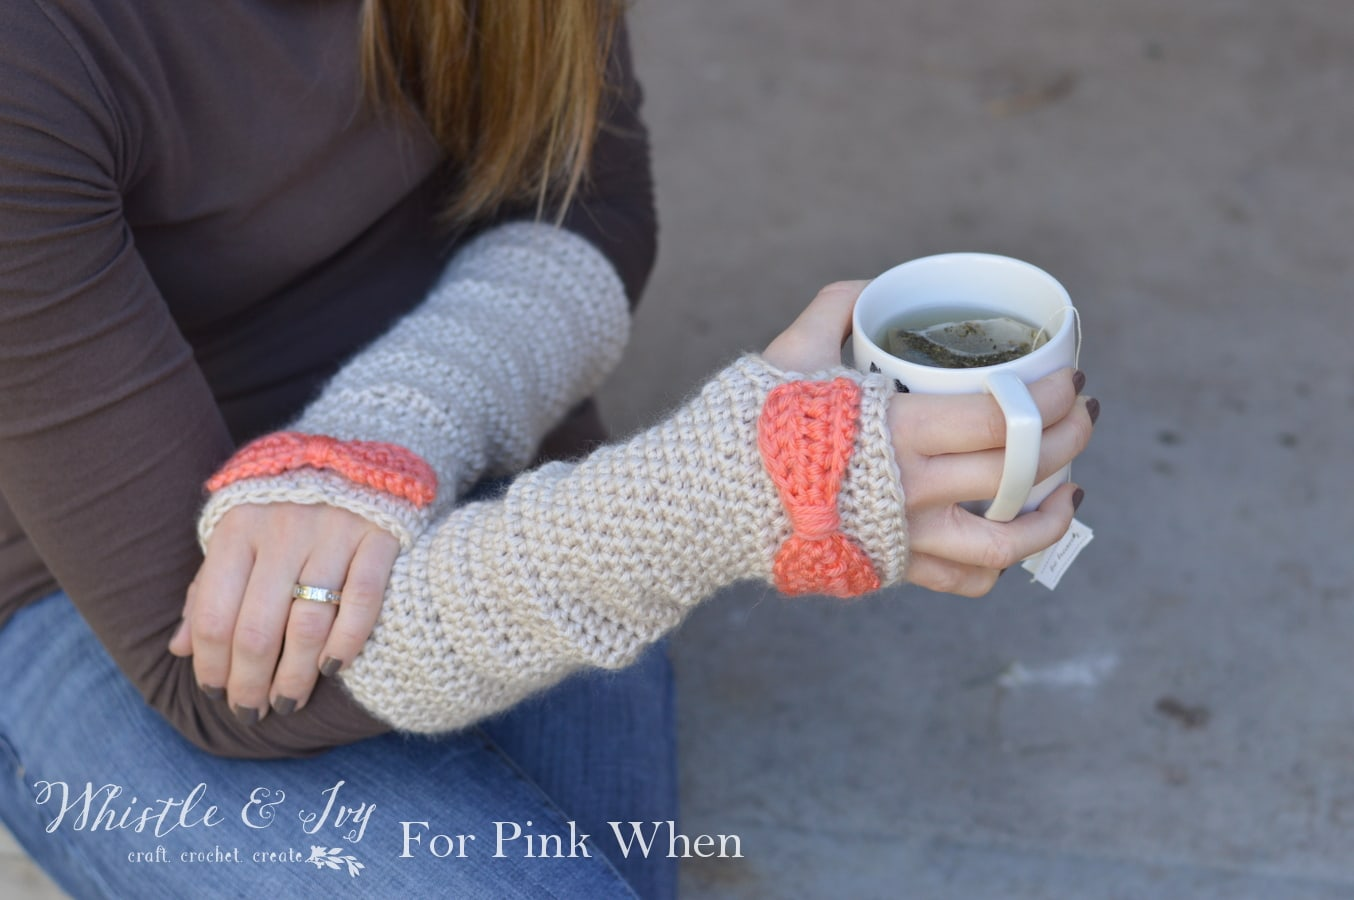 Crocheting With Arms : Dainty Bow Crochet Arm Warmers - Crochet these pretty and cozy arm ...